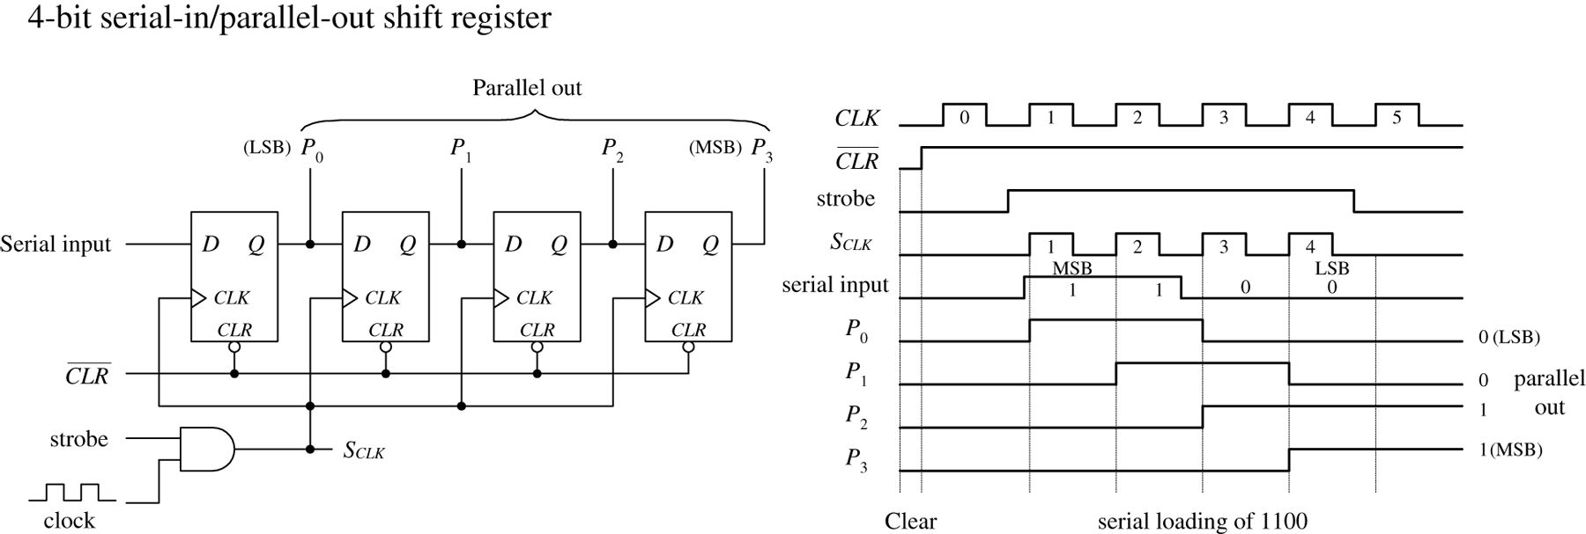 Digital Electronics Practical For Inventors Fourth Shift Register Circuit Diagram Img